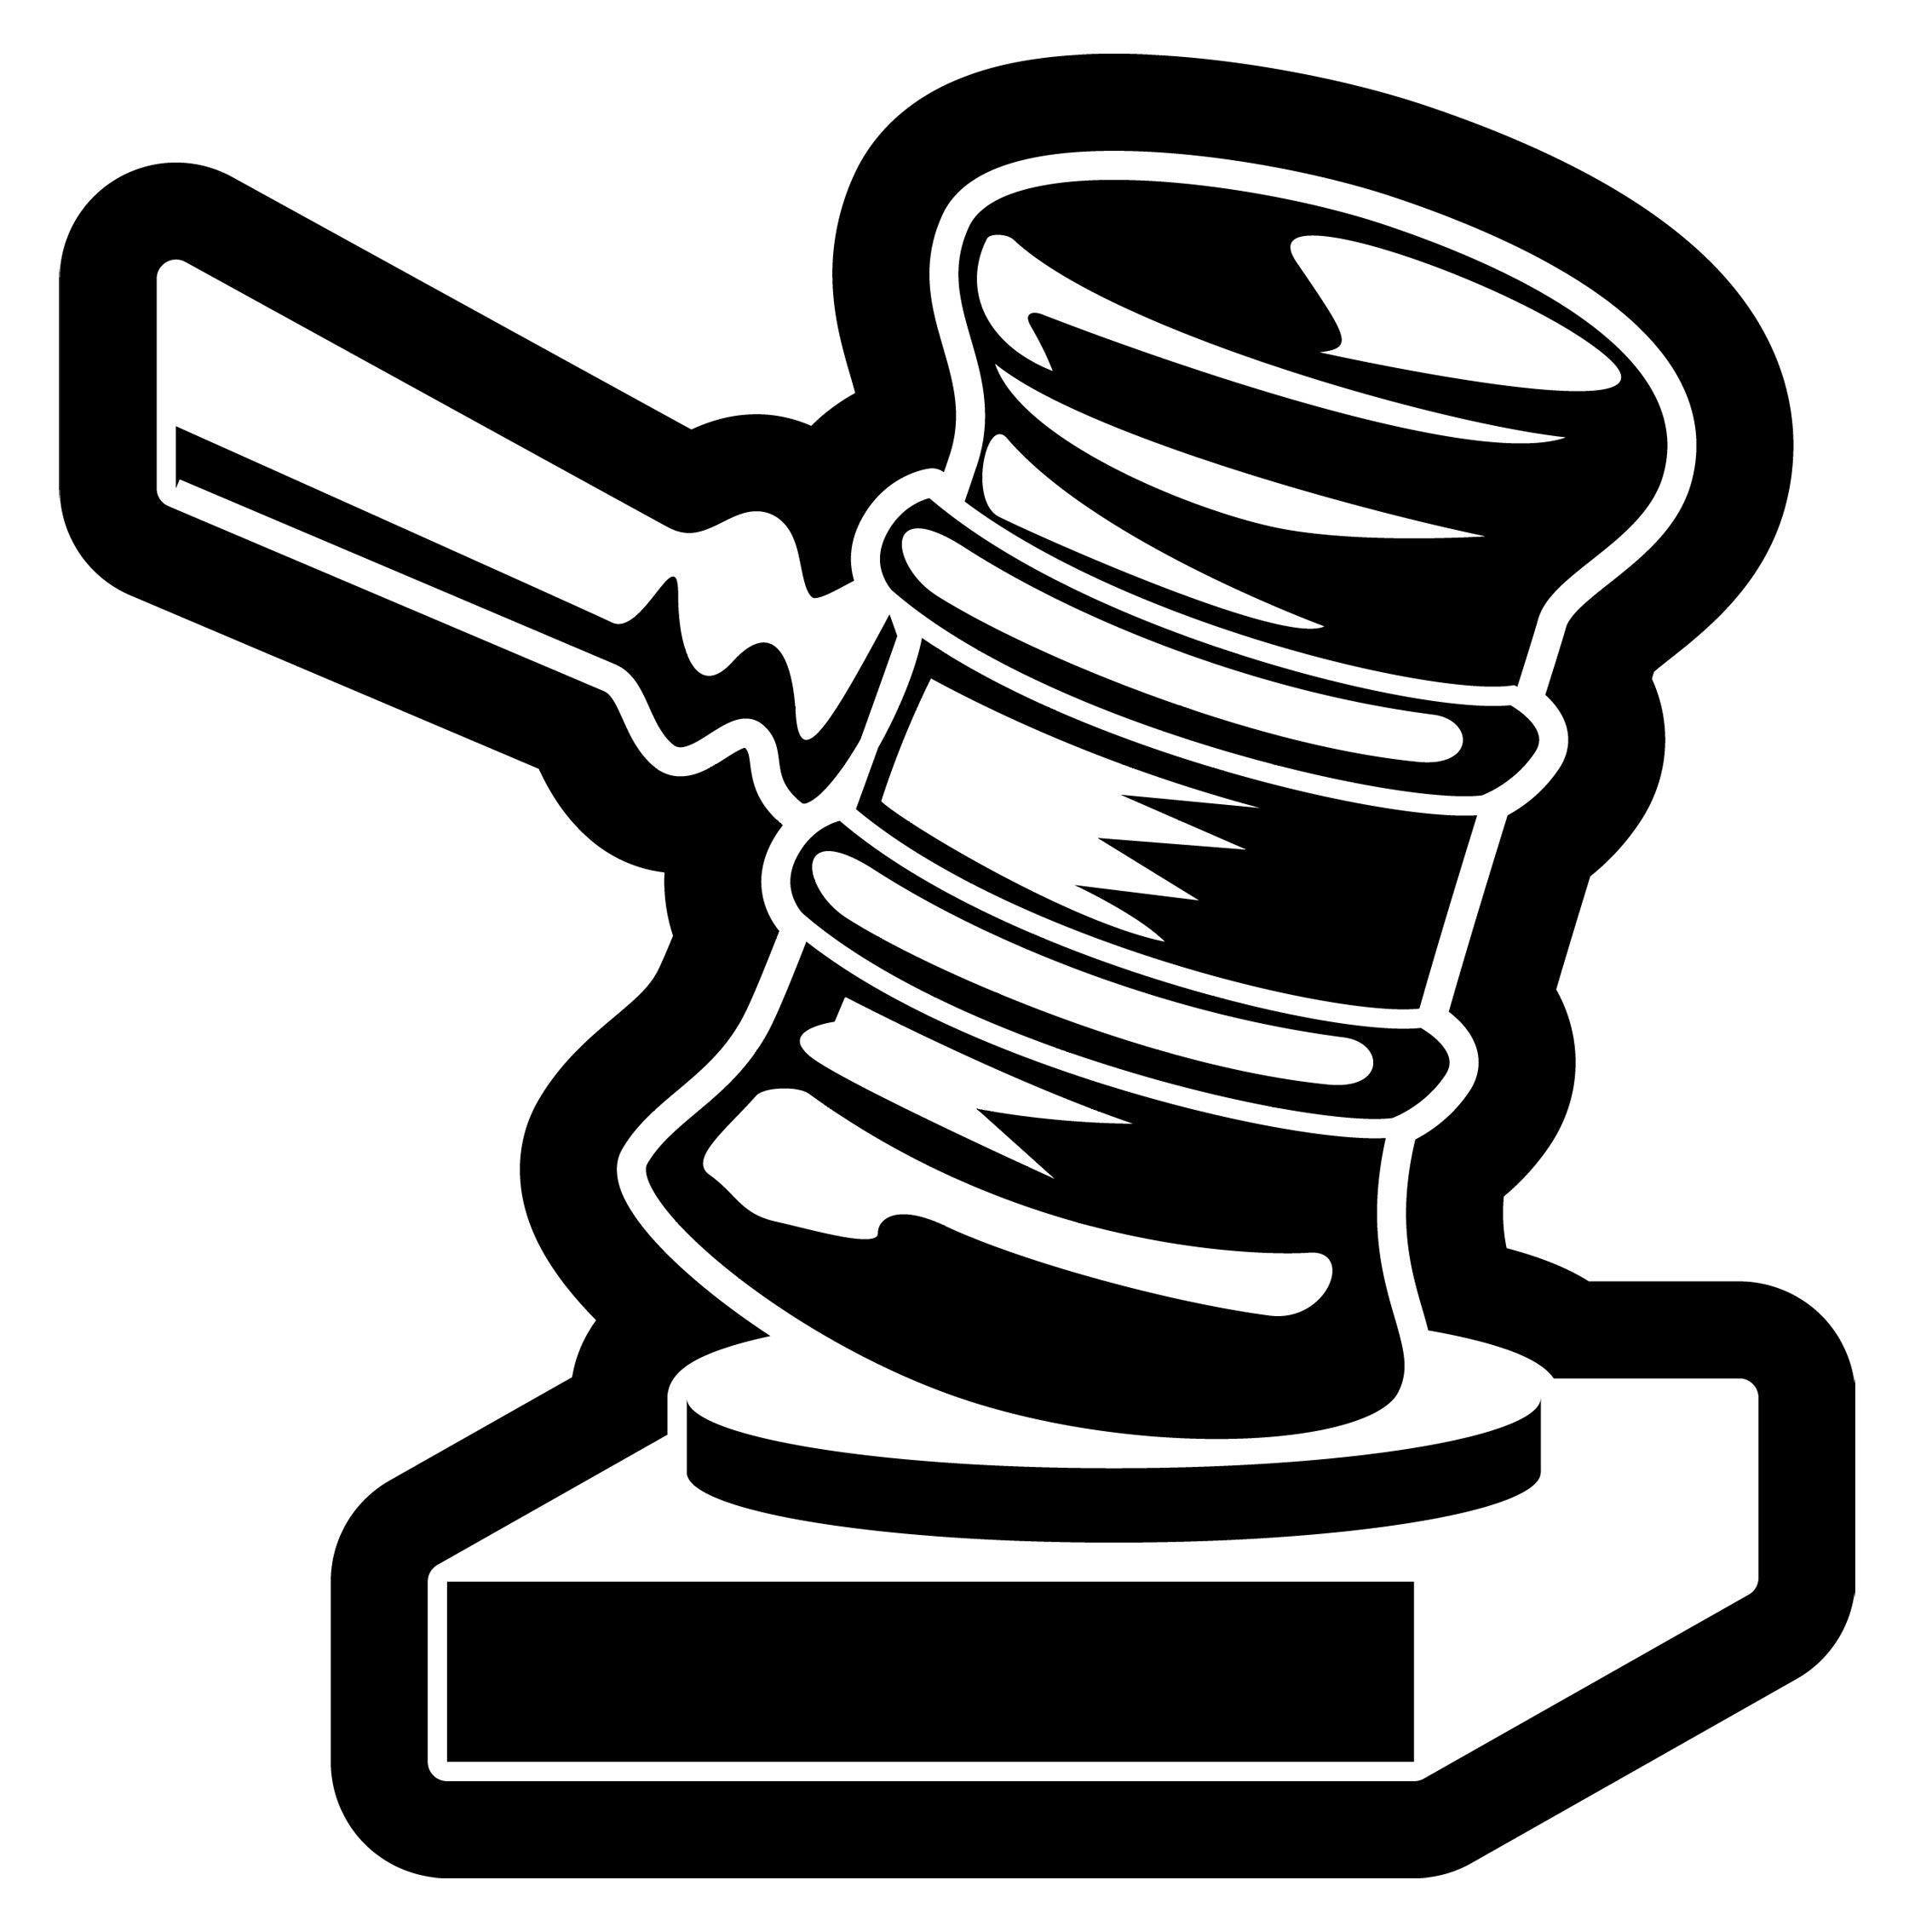 image royalty free stock Lawyer clipart gavel. Collection of free halachoth.